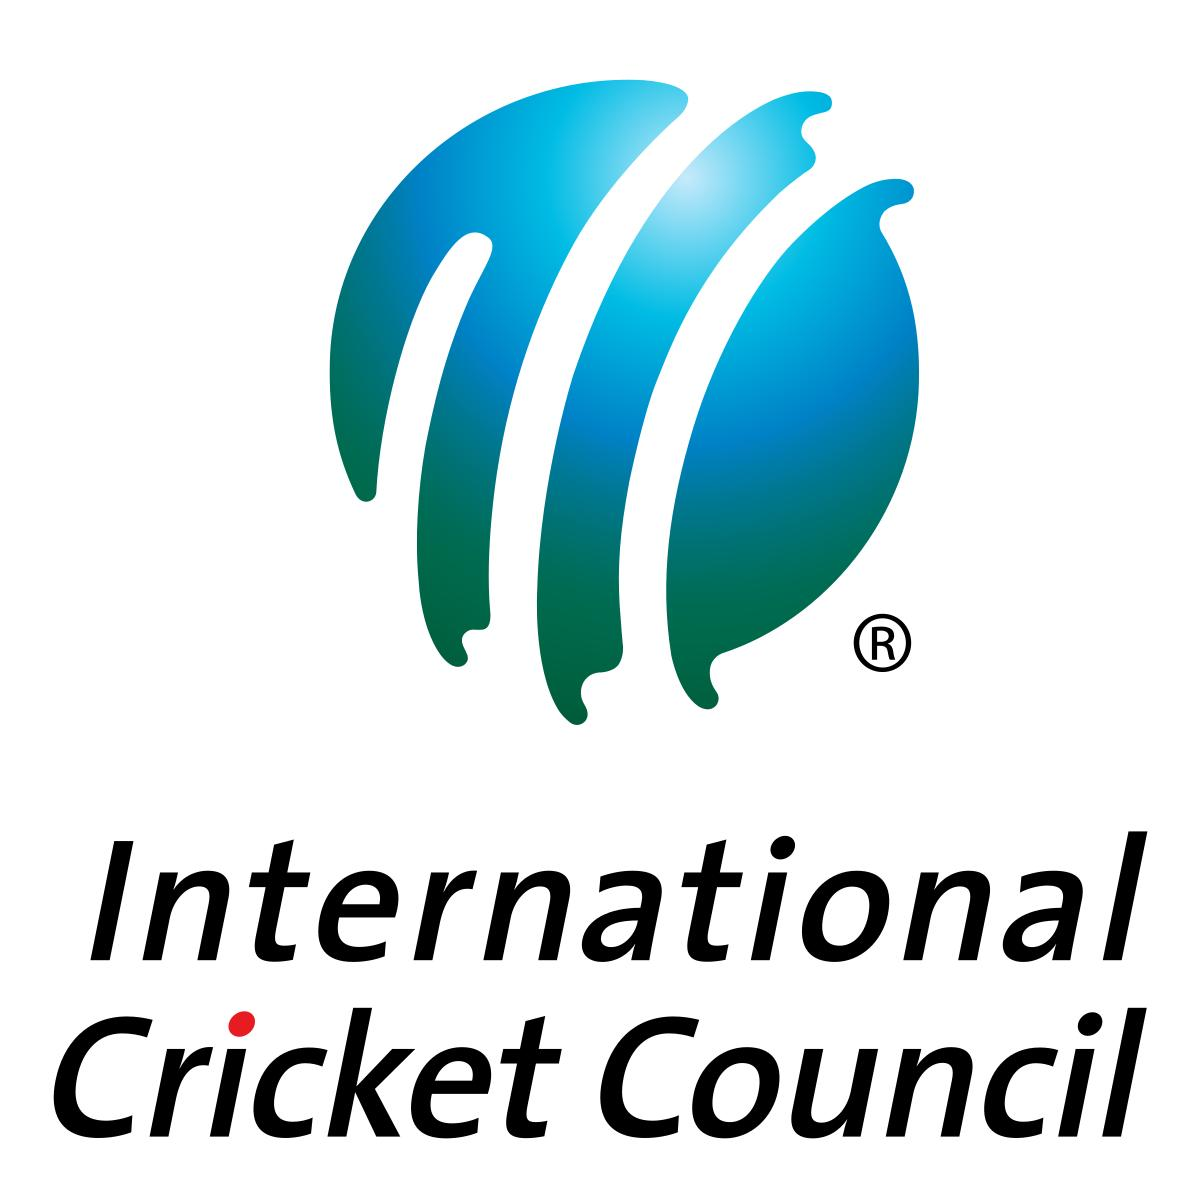 With the #MeToo movement taking the world by storm, sexual harassment came up for discussion at the three-day ICC Board meetings in Singapore